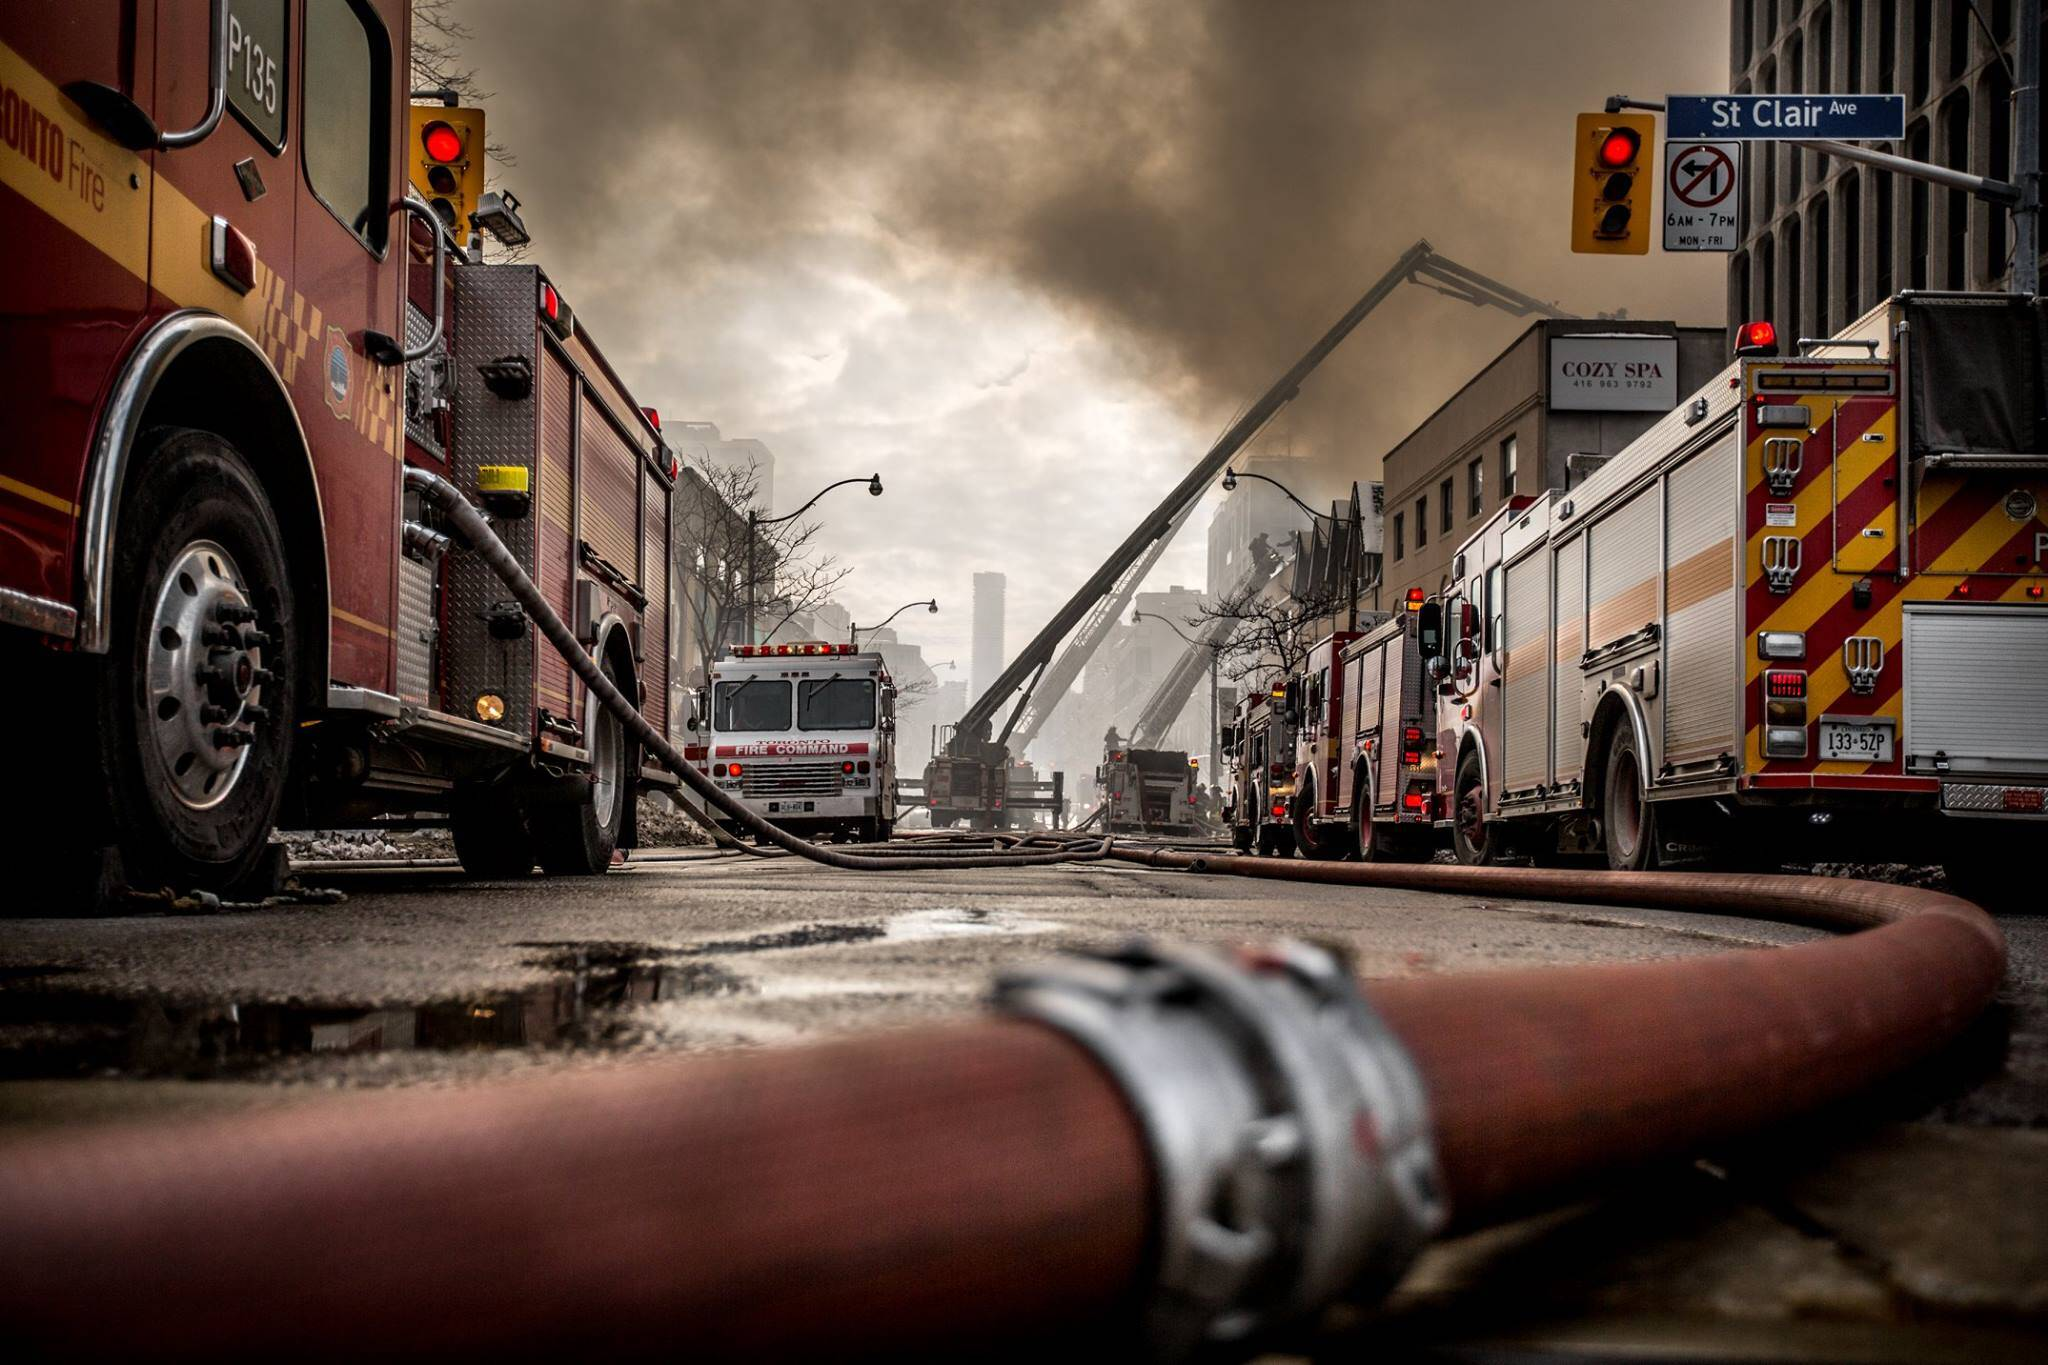 toronto fire photos